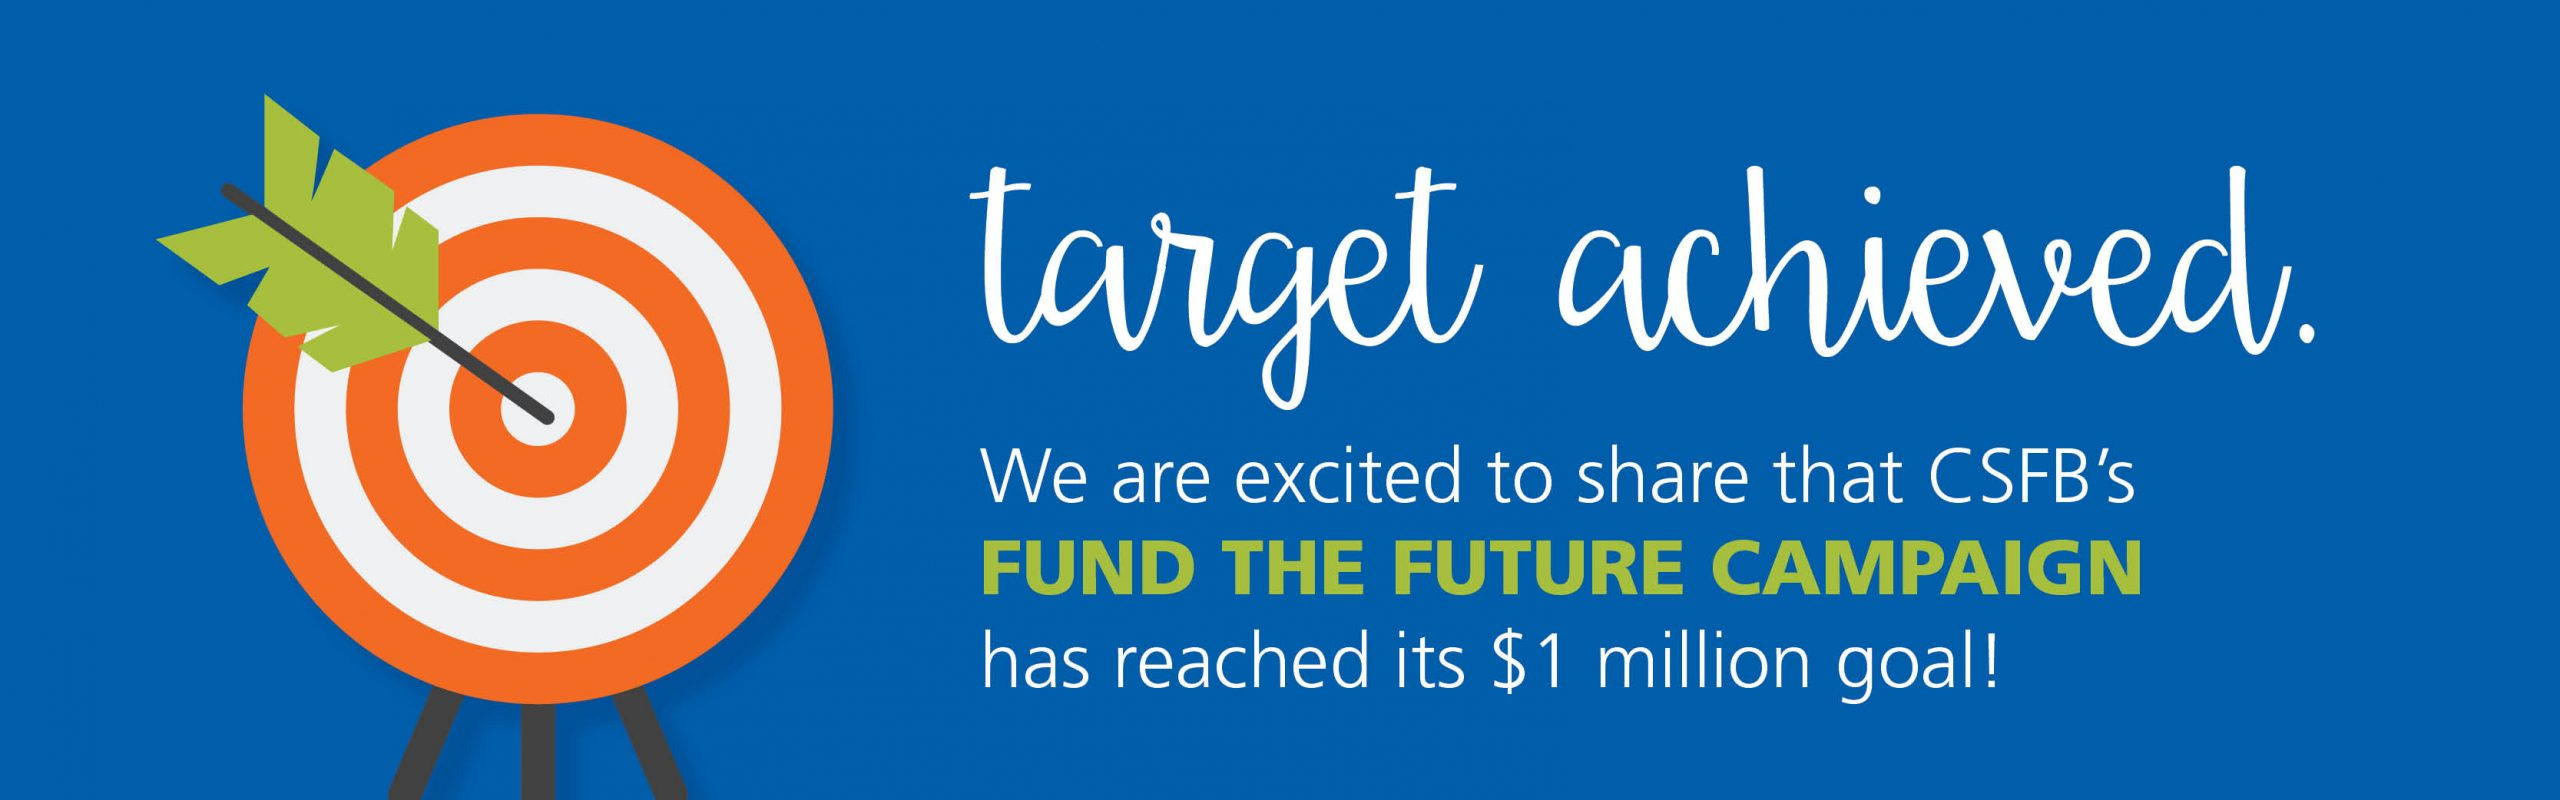 $1 million Target achieved Fund the Future campaign